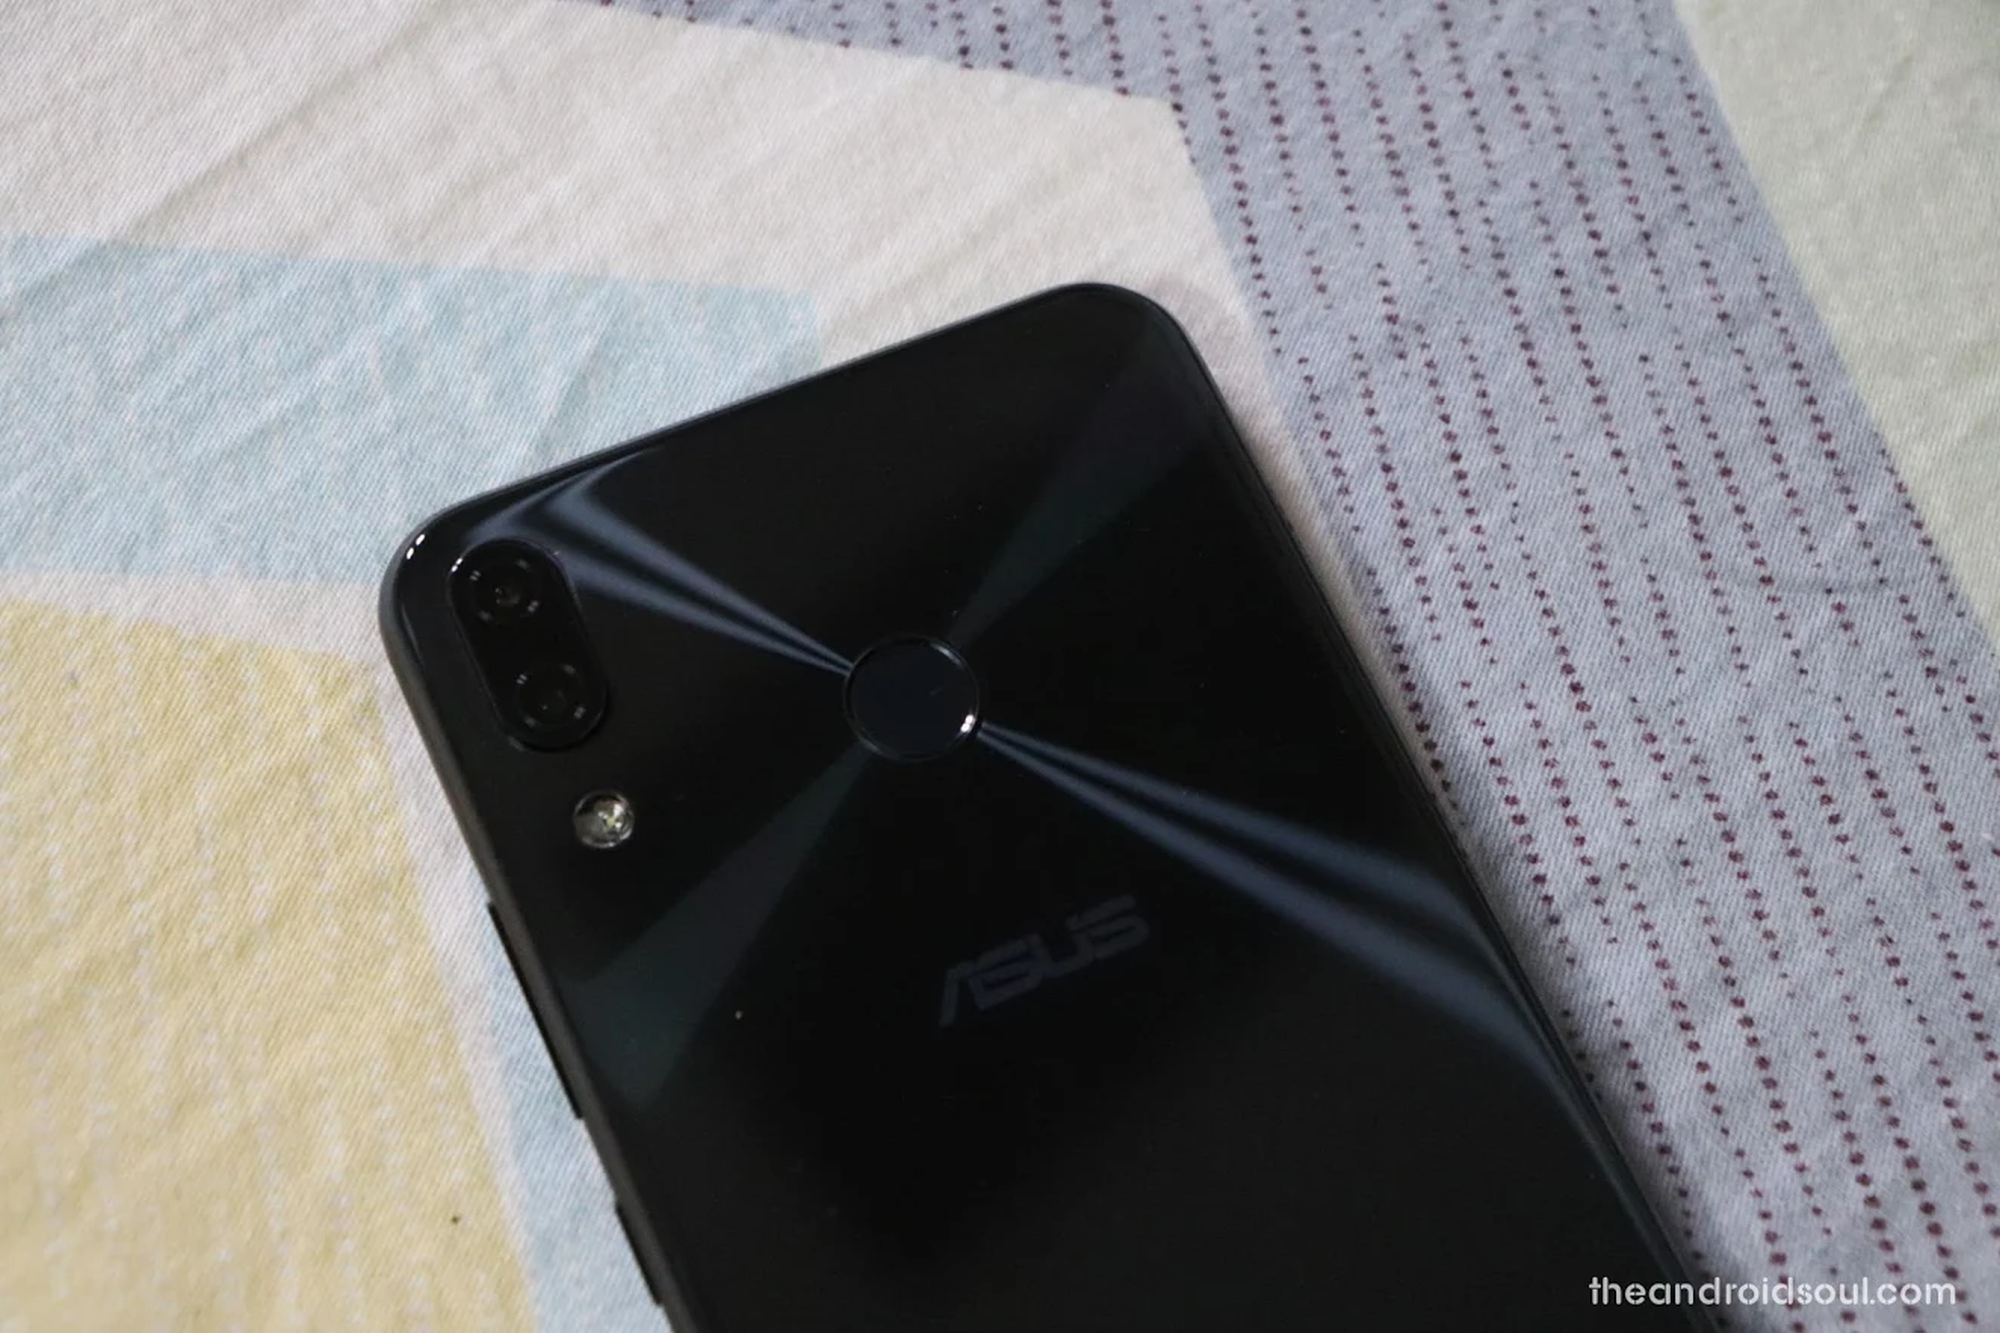 Android Pie update announced for Zenfone 5Z